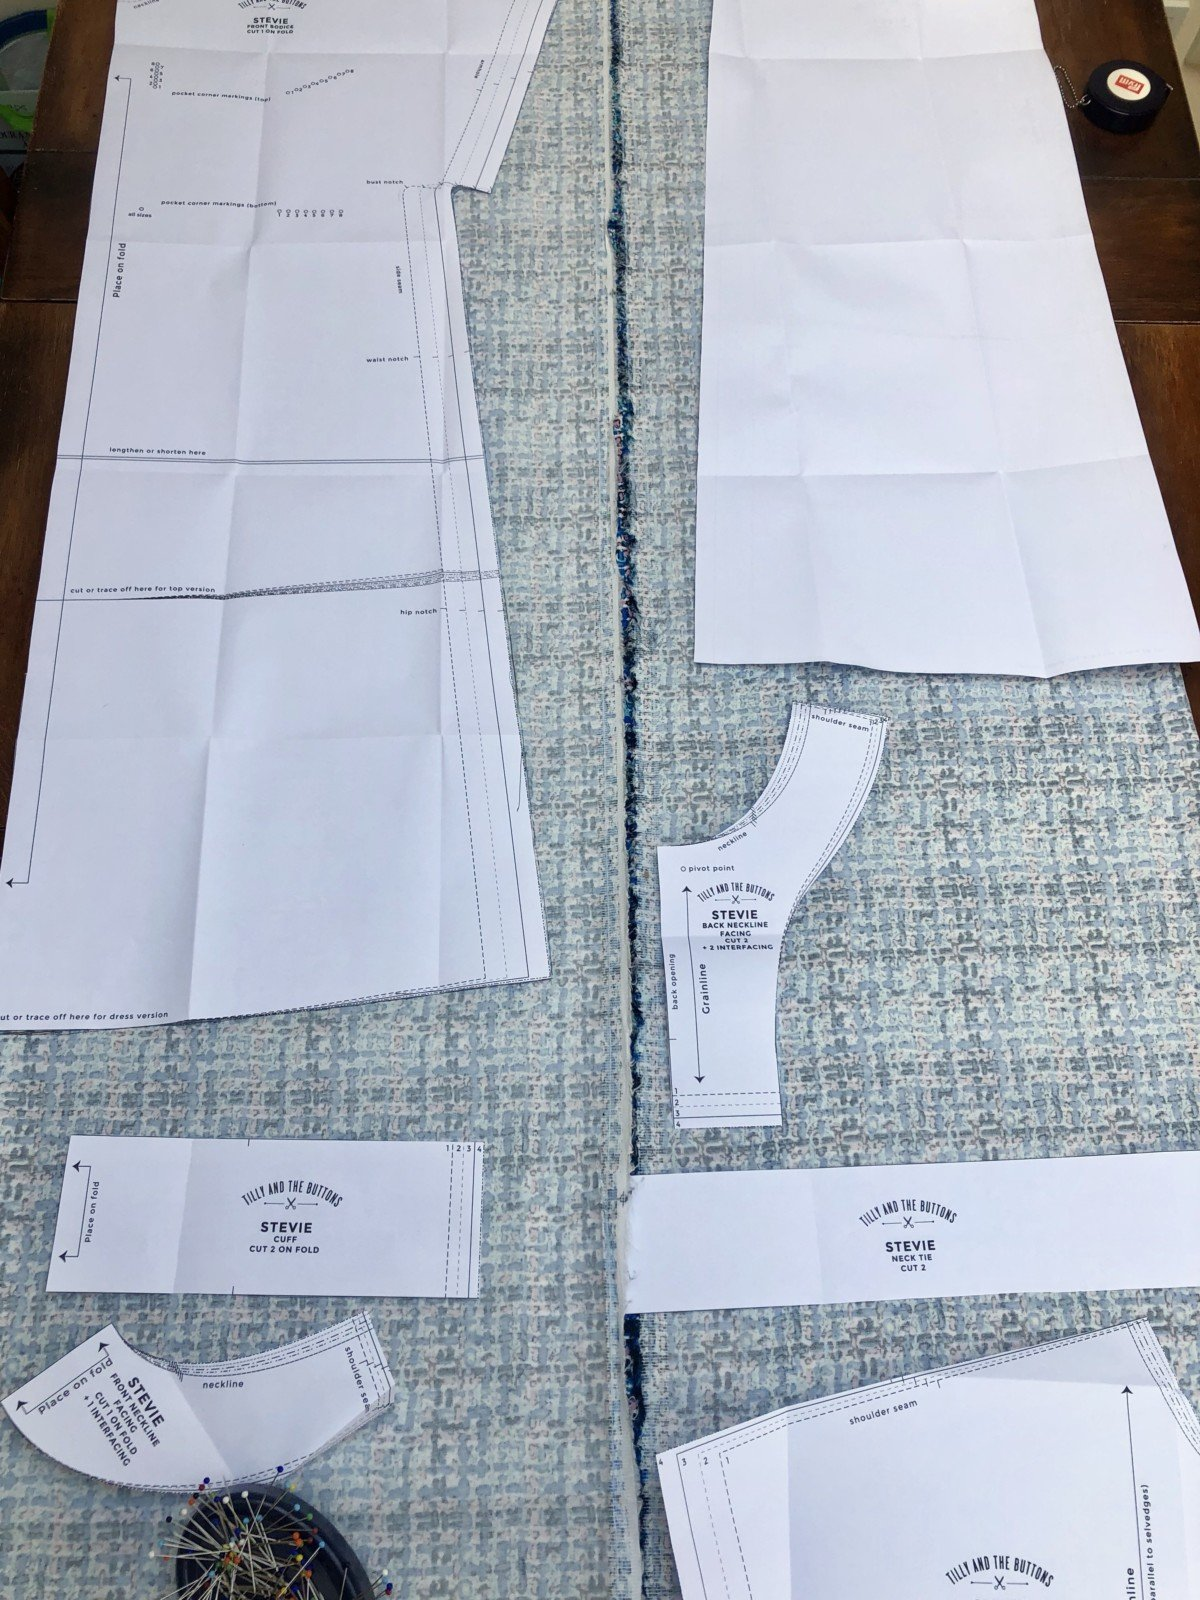 Sewing a stevie dress for beginners, The first rule of thumb is to check, check and check again before you cut! The Tilly and the Buttons instruction book tells you how to arrange your fabric how to lay out your pattern so that it fits.